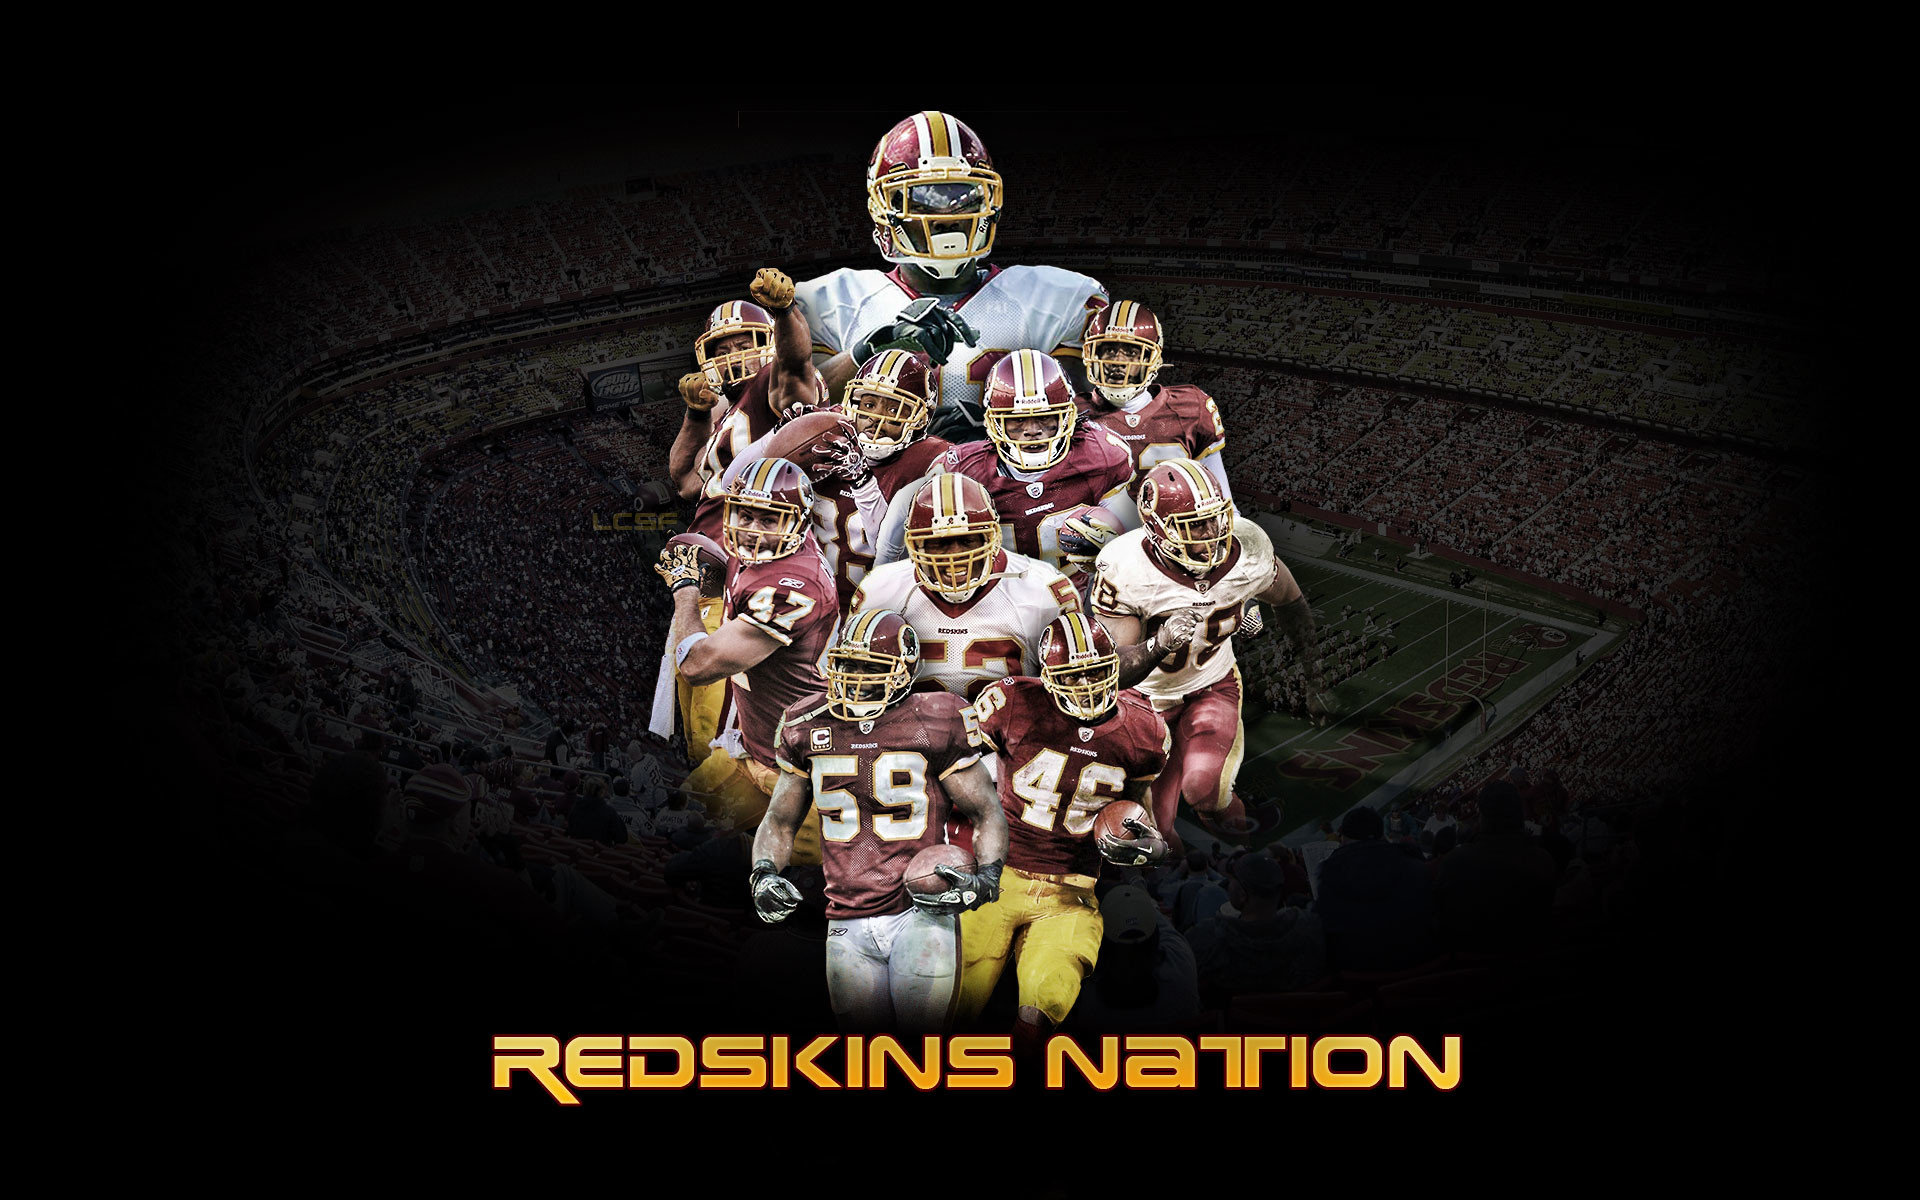 1920x1200 Redskins HD Background Wallpaper | HD Wallpapers, HD Backgrounds .